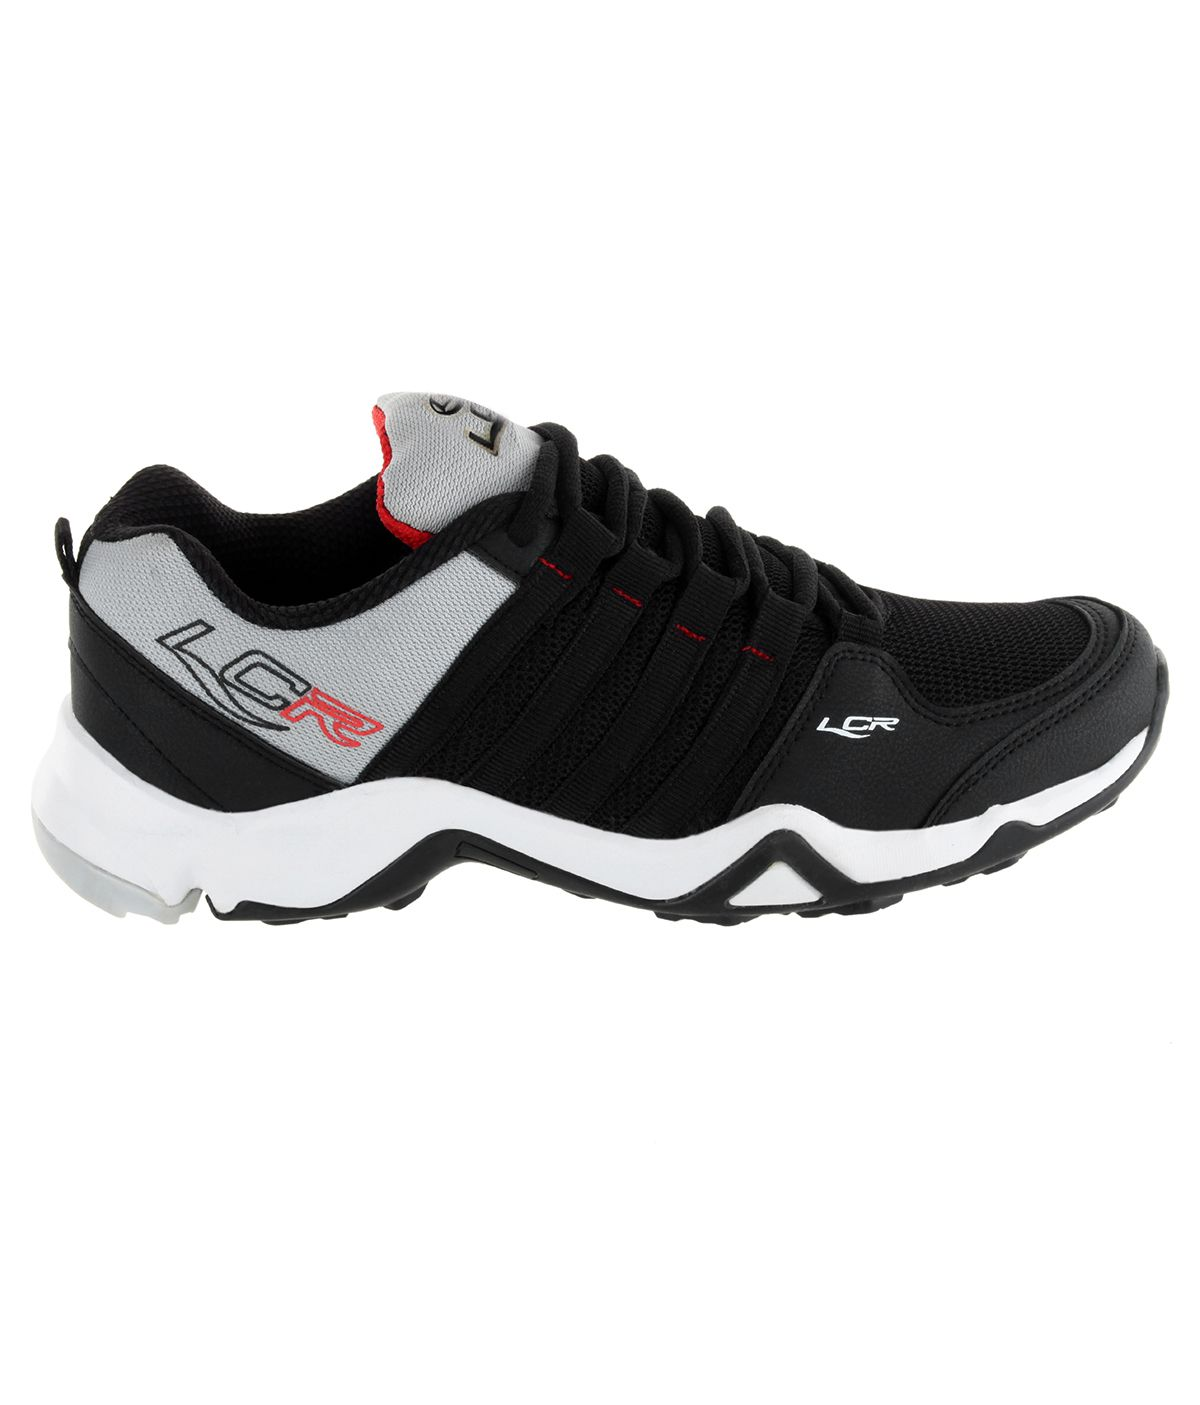 36e956685c7 Lancer cuba-14 Black Running Shoes - Buy Lancer cuba-14 Black ...